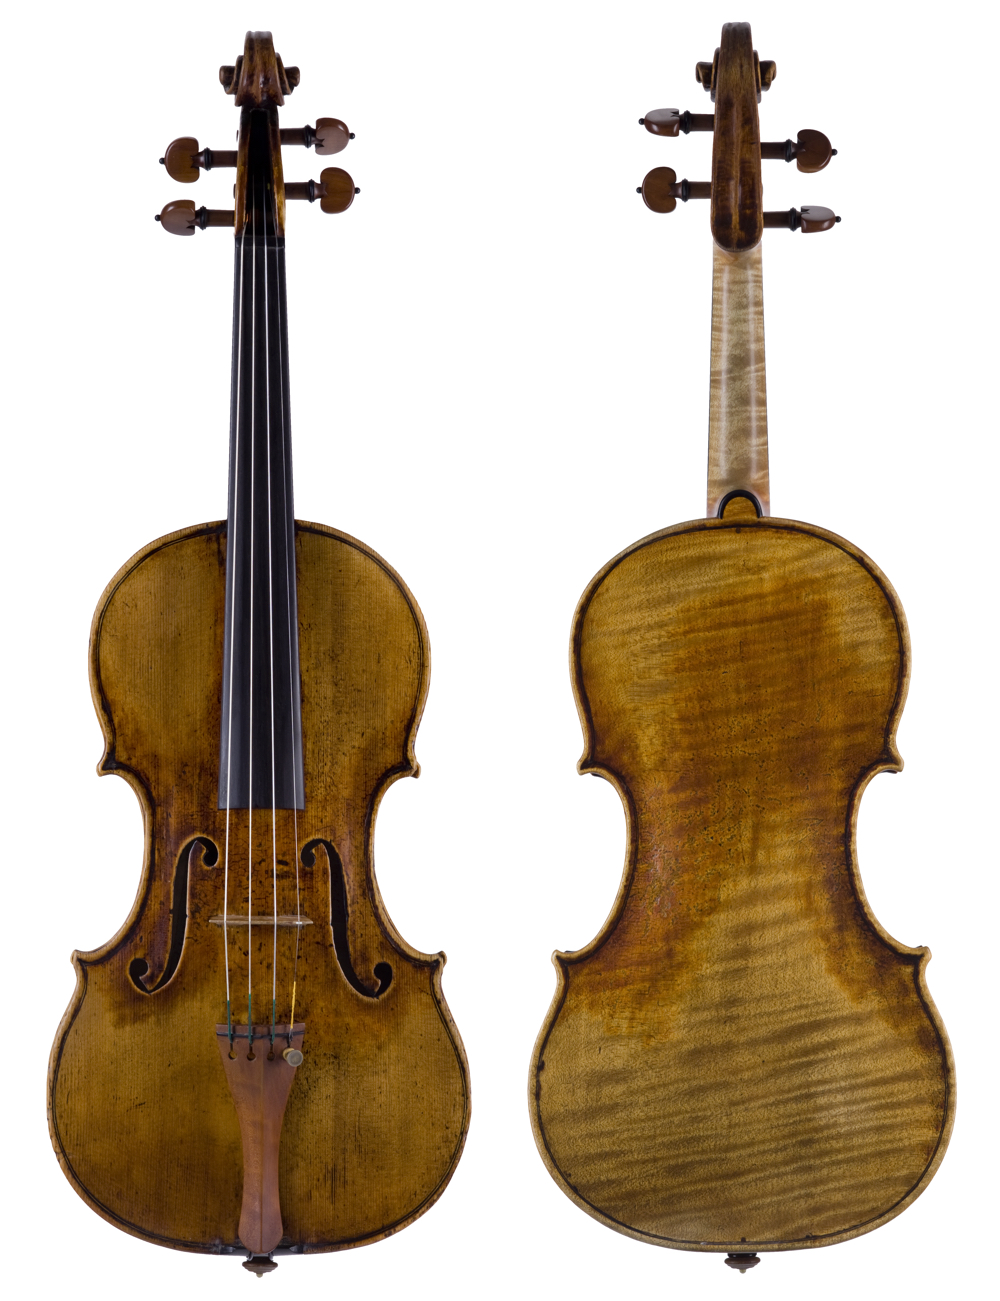 Guarneri 'del Gesu' 1742 'ex-Soldat'